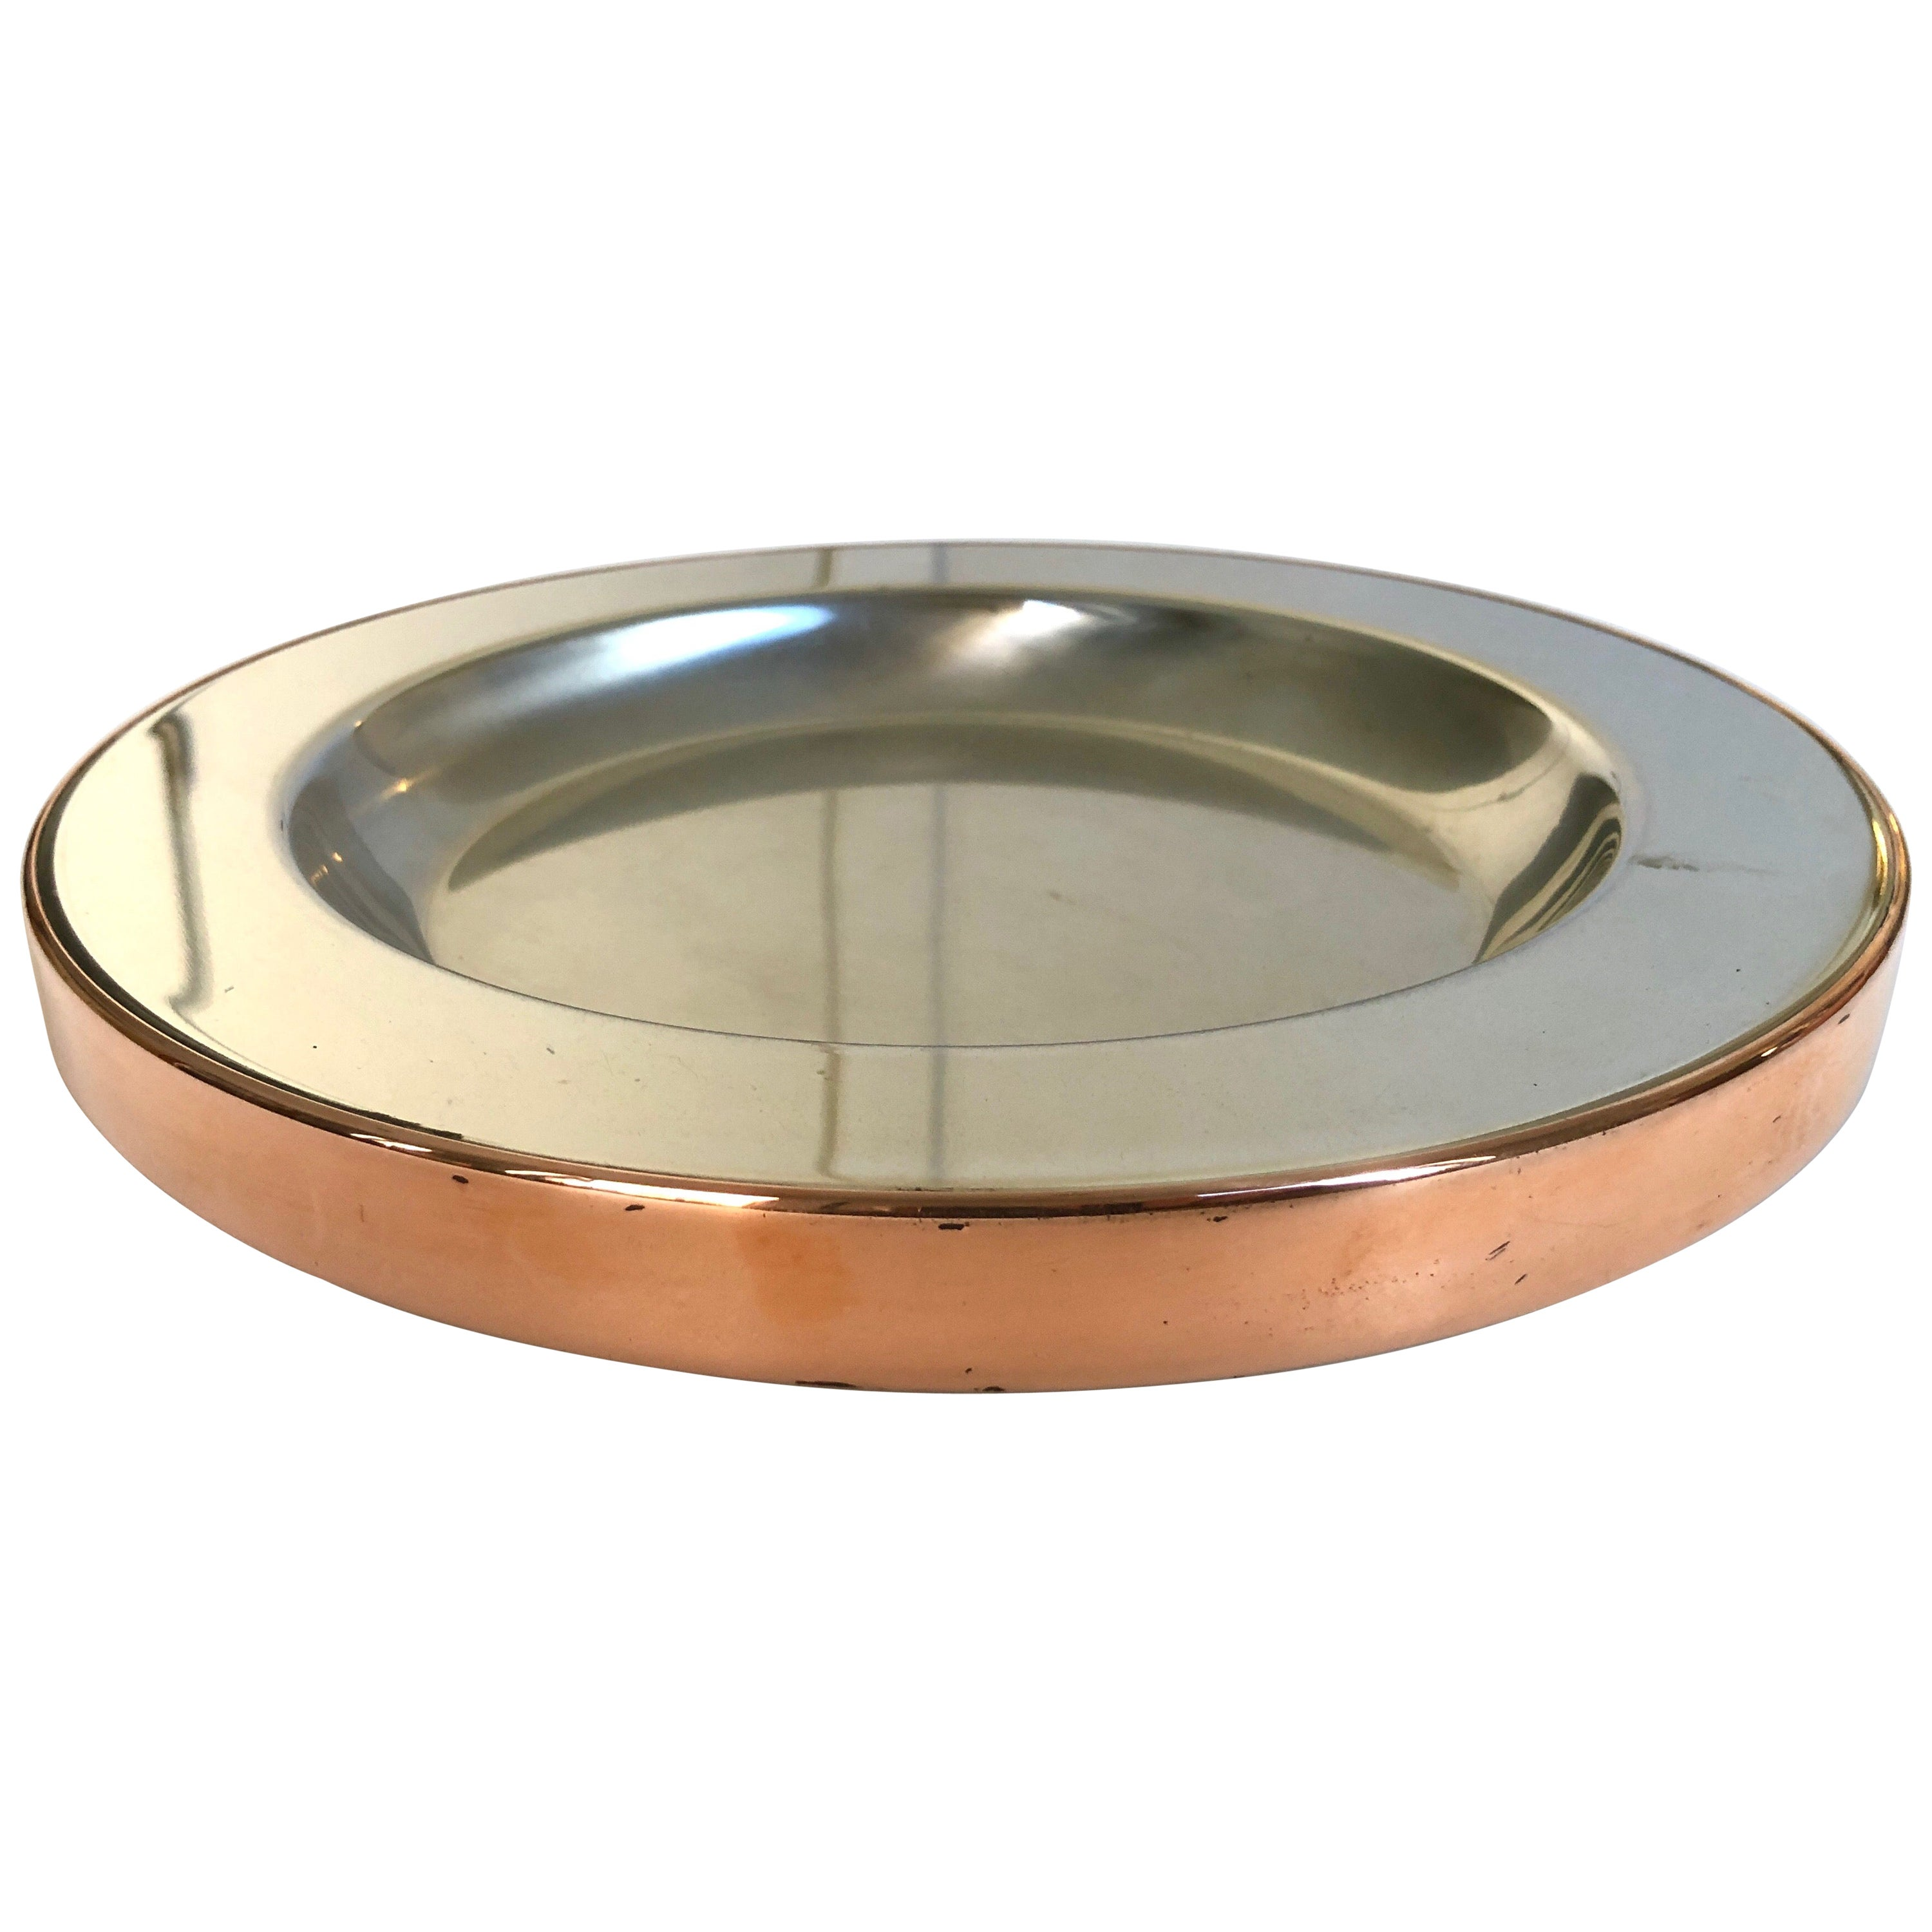 Gabriella Crespi Steel and Copper Charger